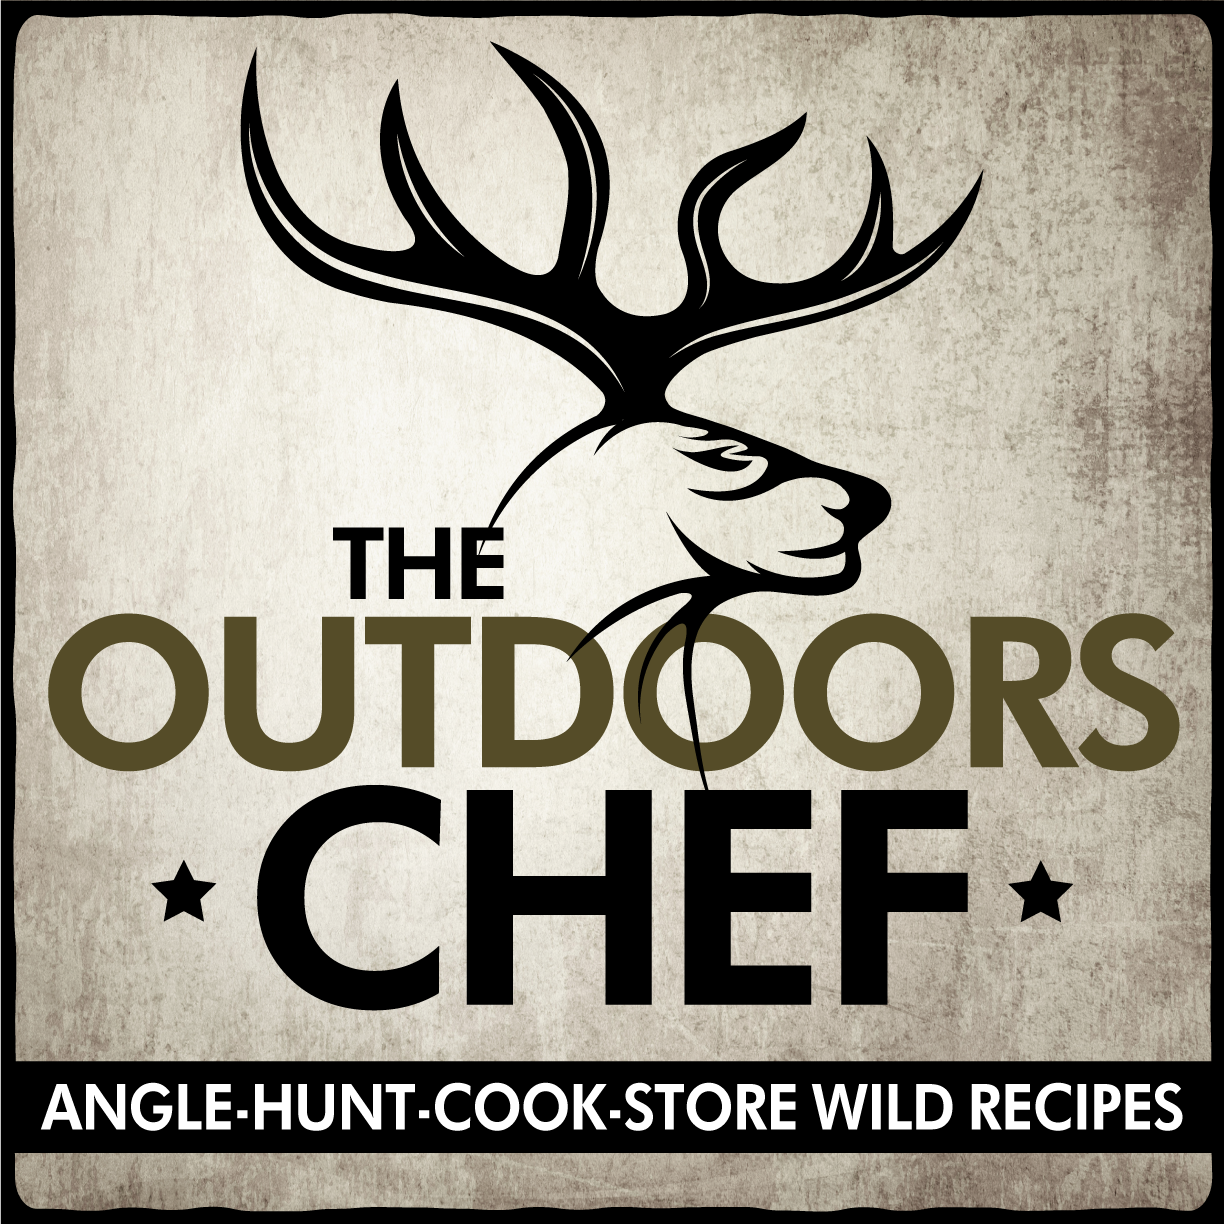 THE OUTDOORS CHEF